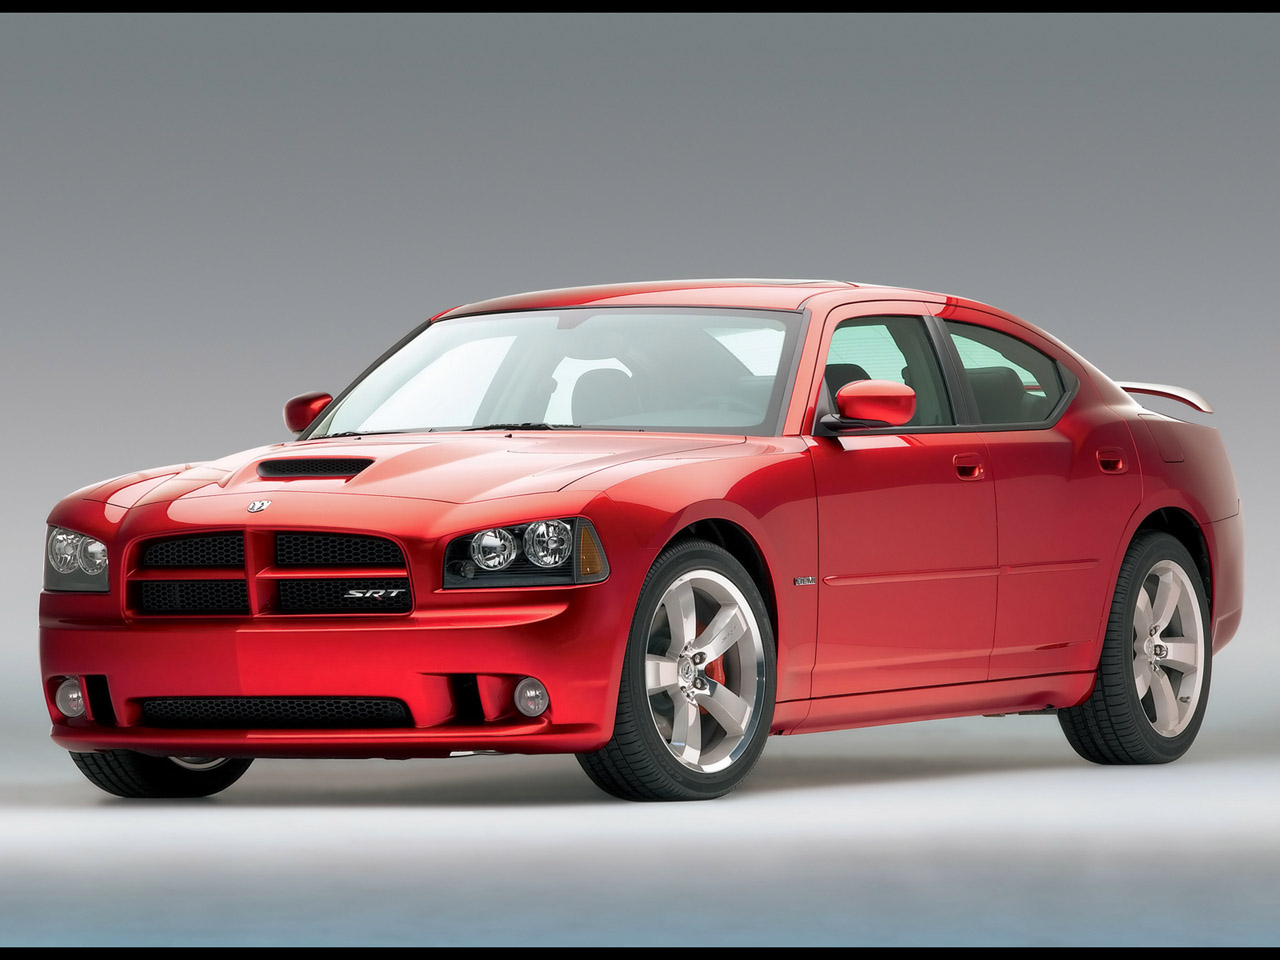 2006 dodge charger srt8 images photo 2006 dodge charger. Black Bedroom Furniture Sets. Home Design Ideas